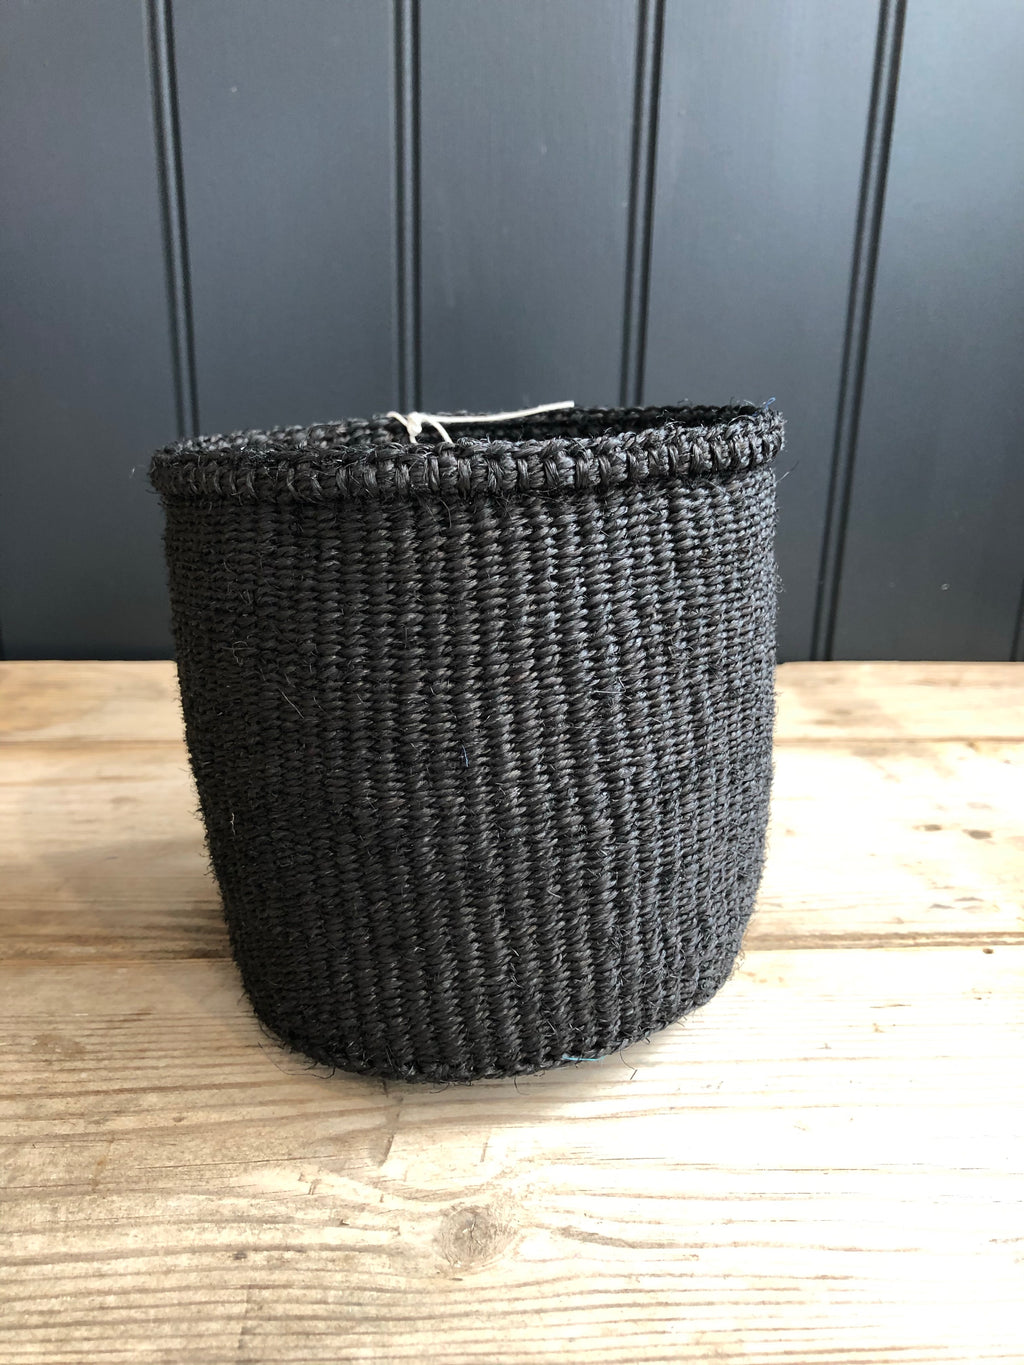 Charcoal Black Woven Basket